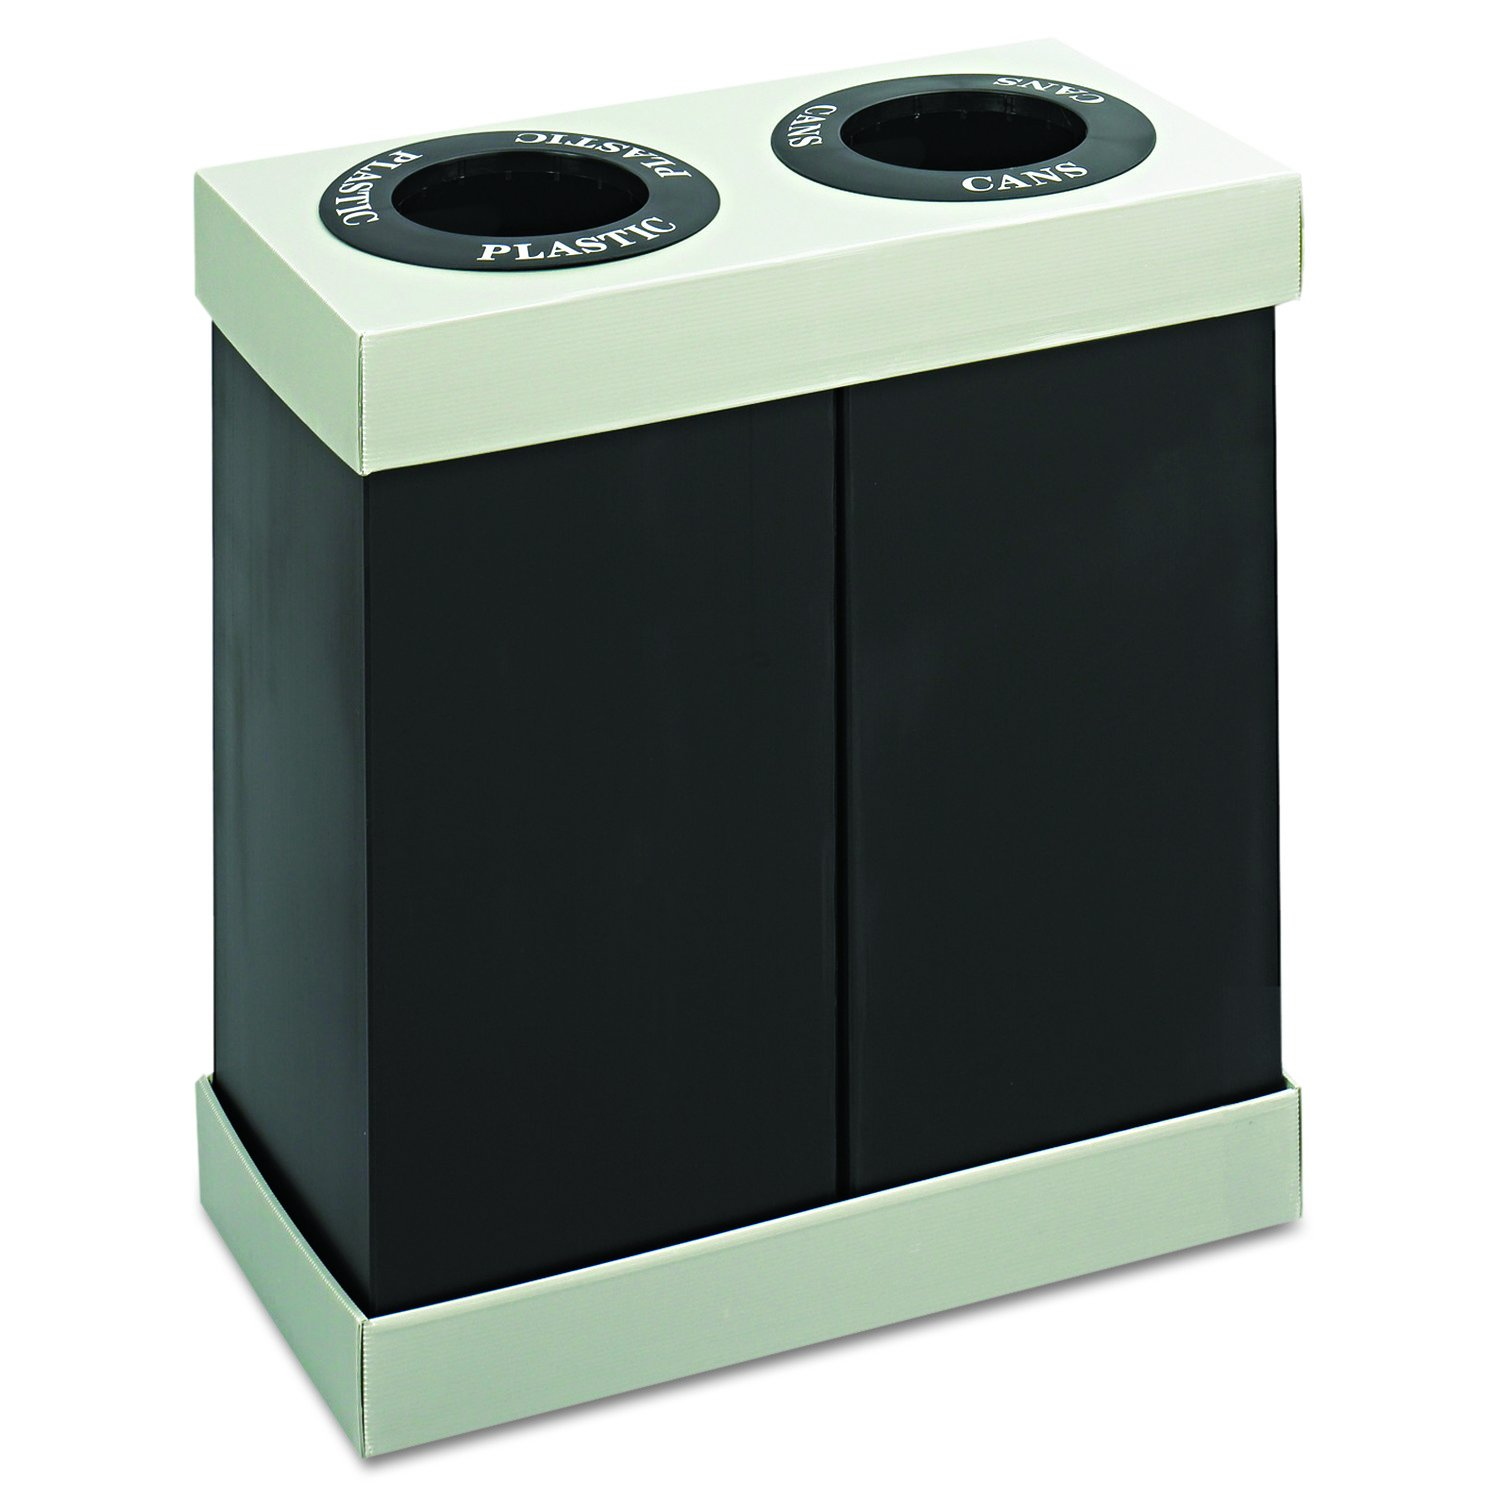 Safco Products At-Your-Disposal Recycling Center Double (9794BL)